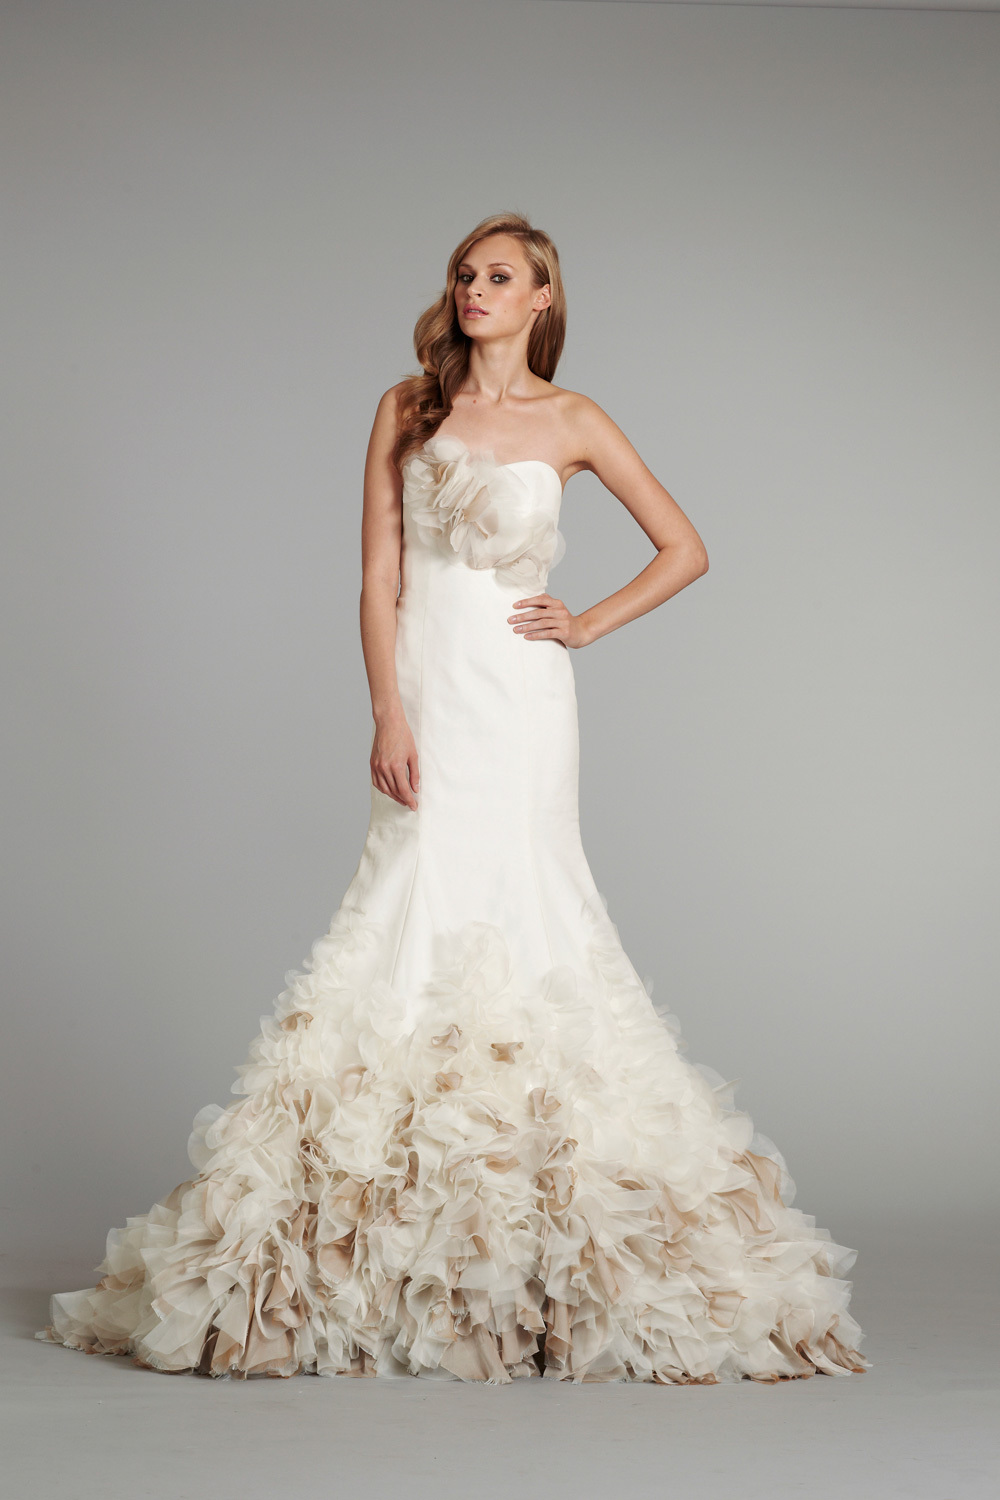 New-bridal-gowns-fall-2012-wedding-dress-hayley-paige-for-jlm-couture-babs.full